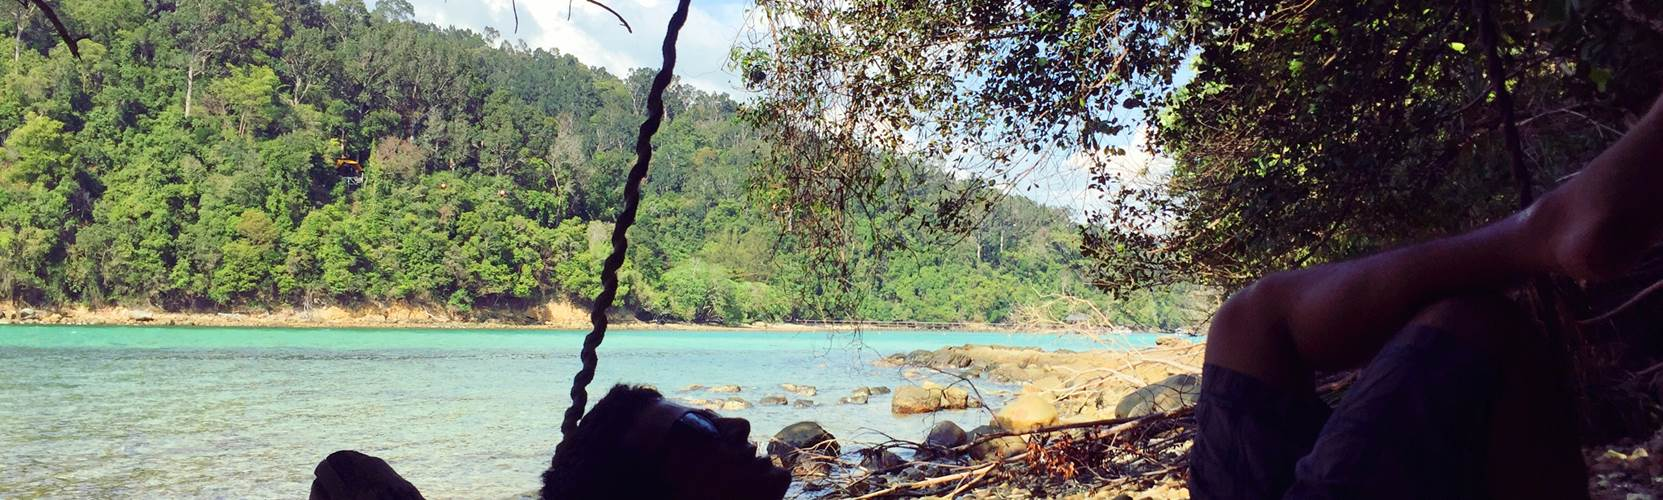 Adventure Alternative Borneo Sapi Island Swing